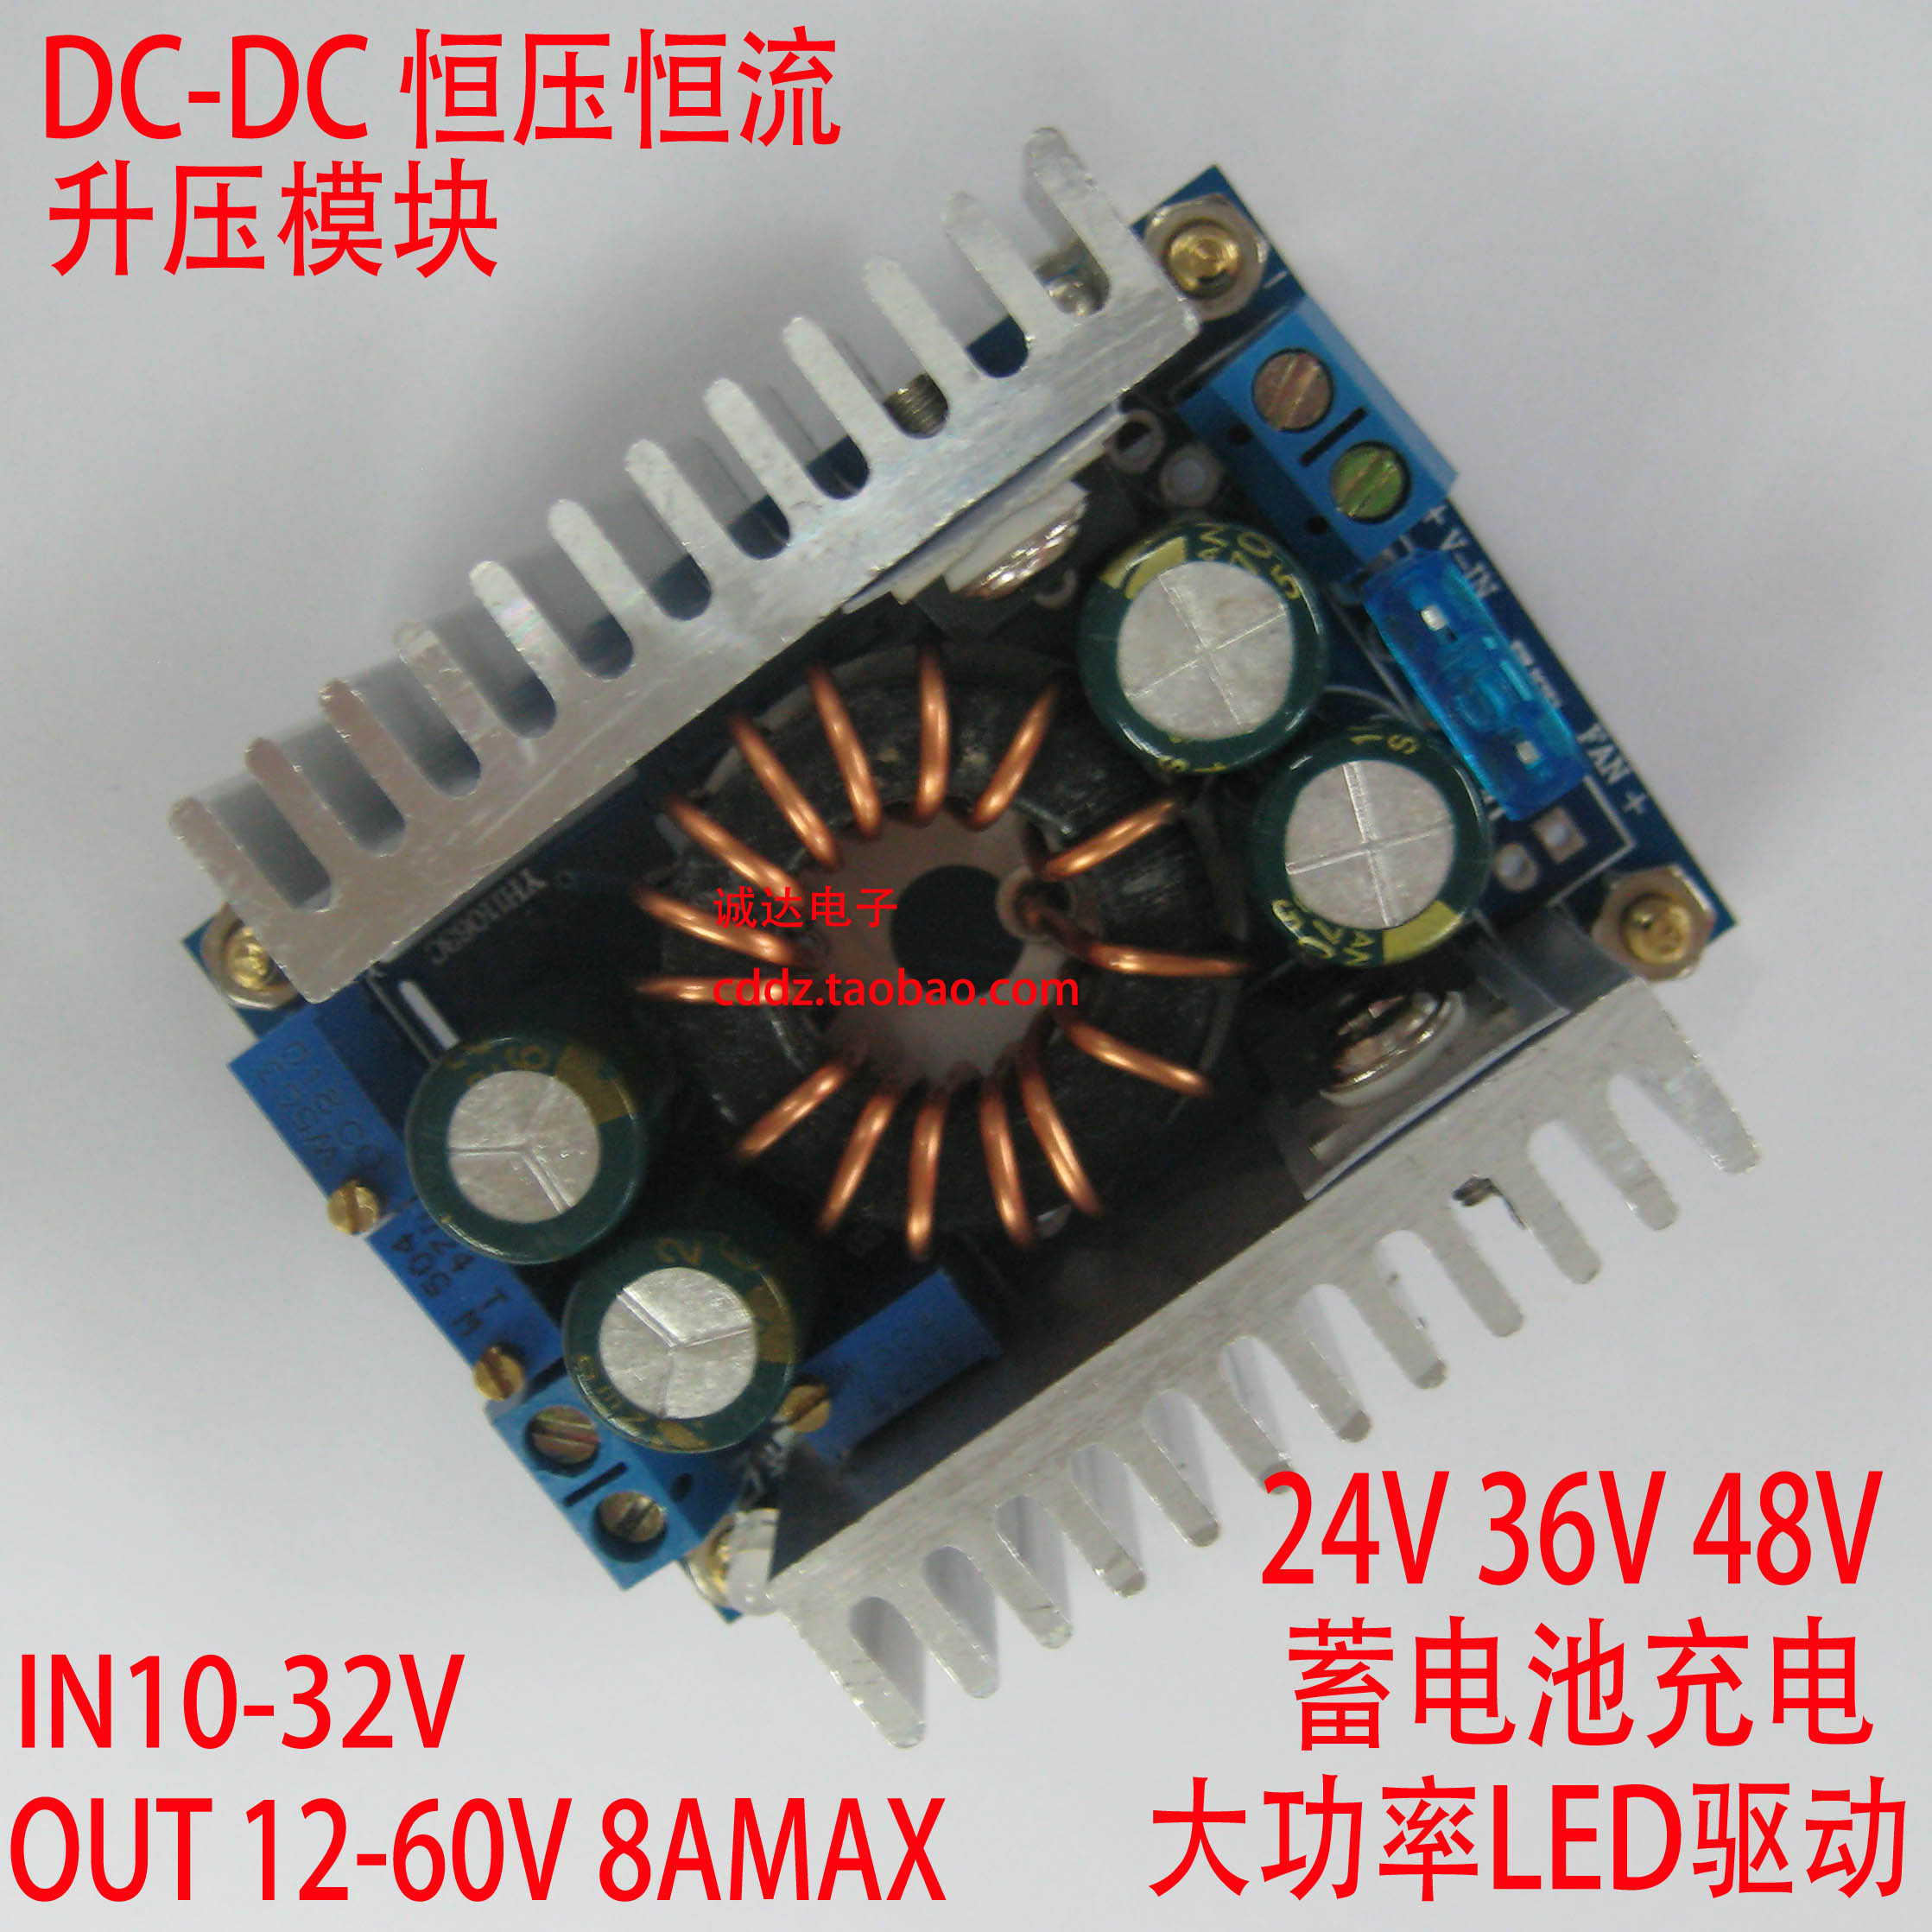 DC-DC adjustable step-up constant current 10-32 converter 12-60V solar voltage regulated LED power supply module cps 6011 60v 11a digital adjustable dc power supply laboratory power supply cps6011